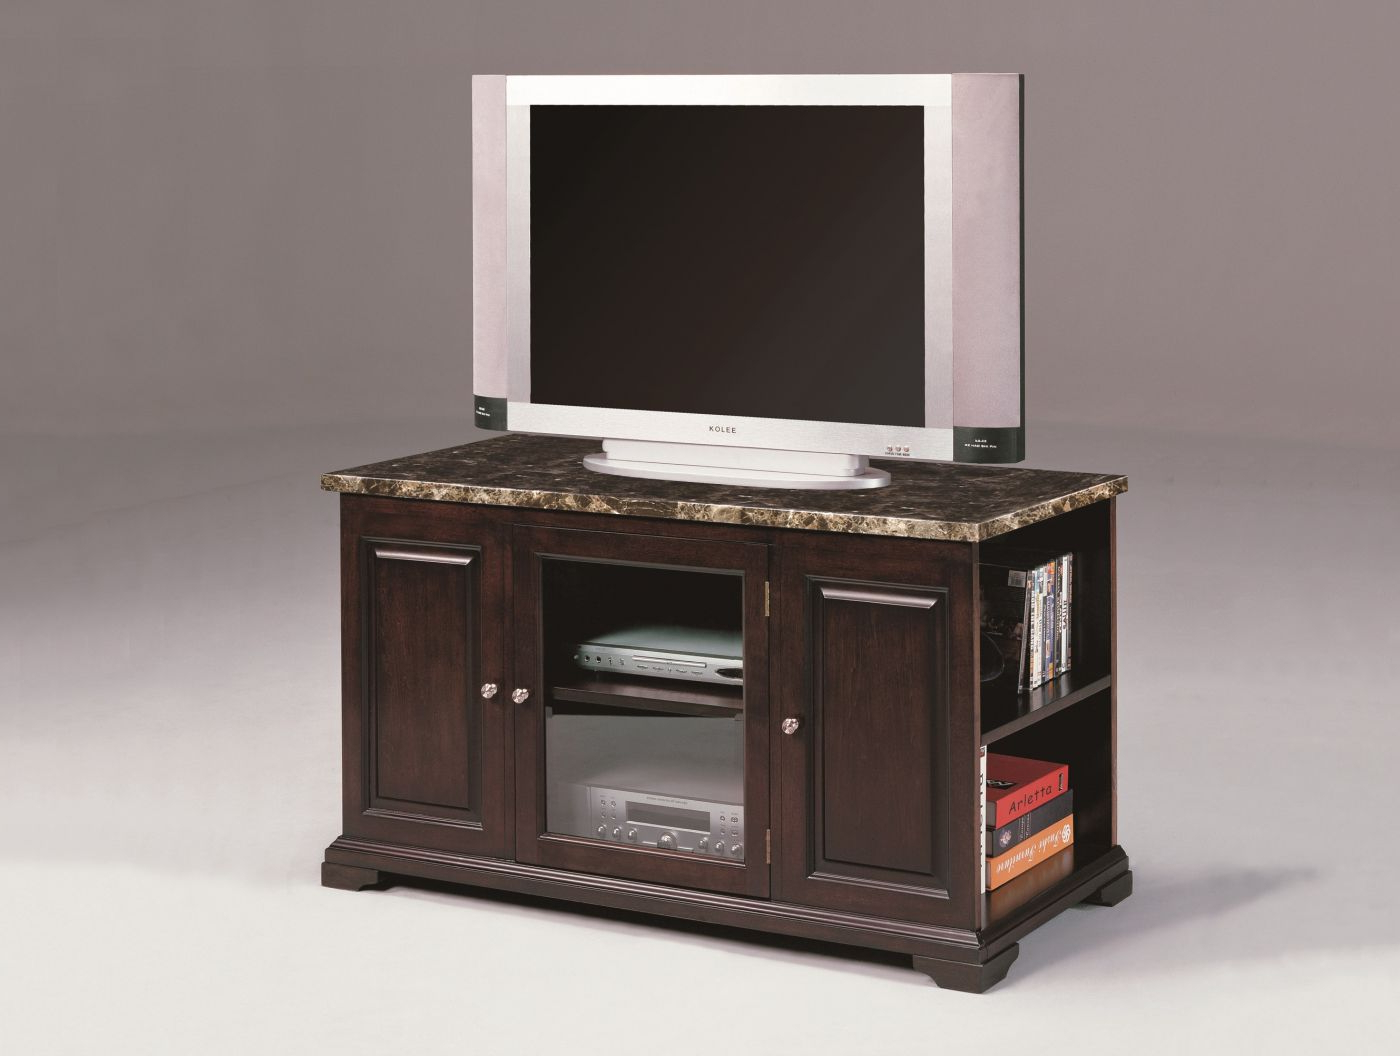 Harris Small Marble Espresso Console – Plasma Intended For Draper 62 Inch Tv Stands (View 8 of 20)